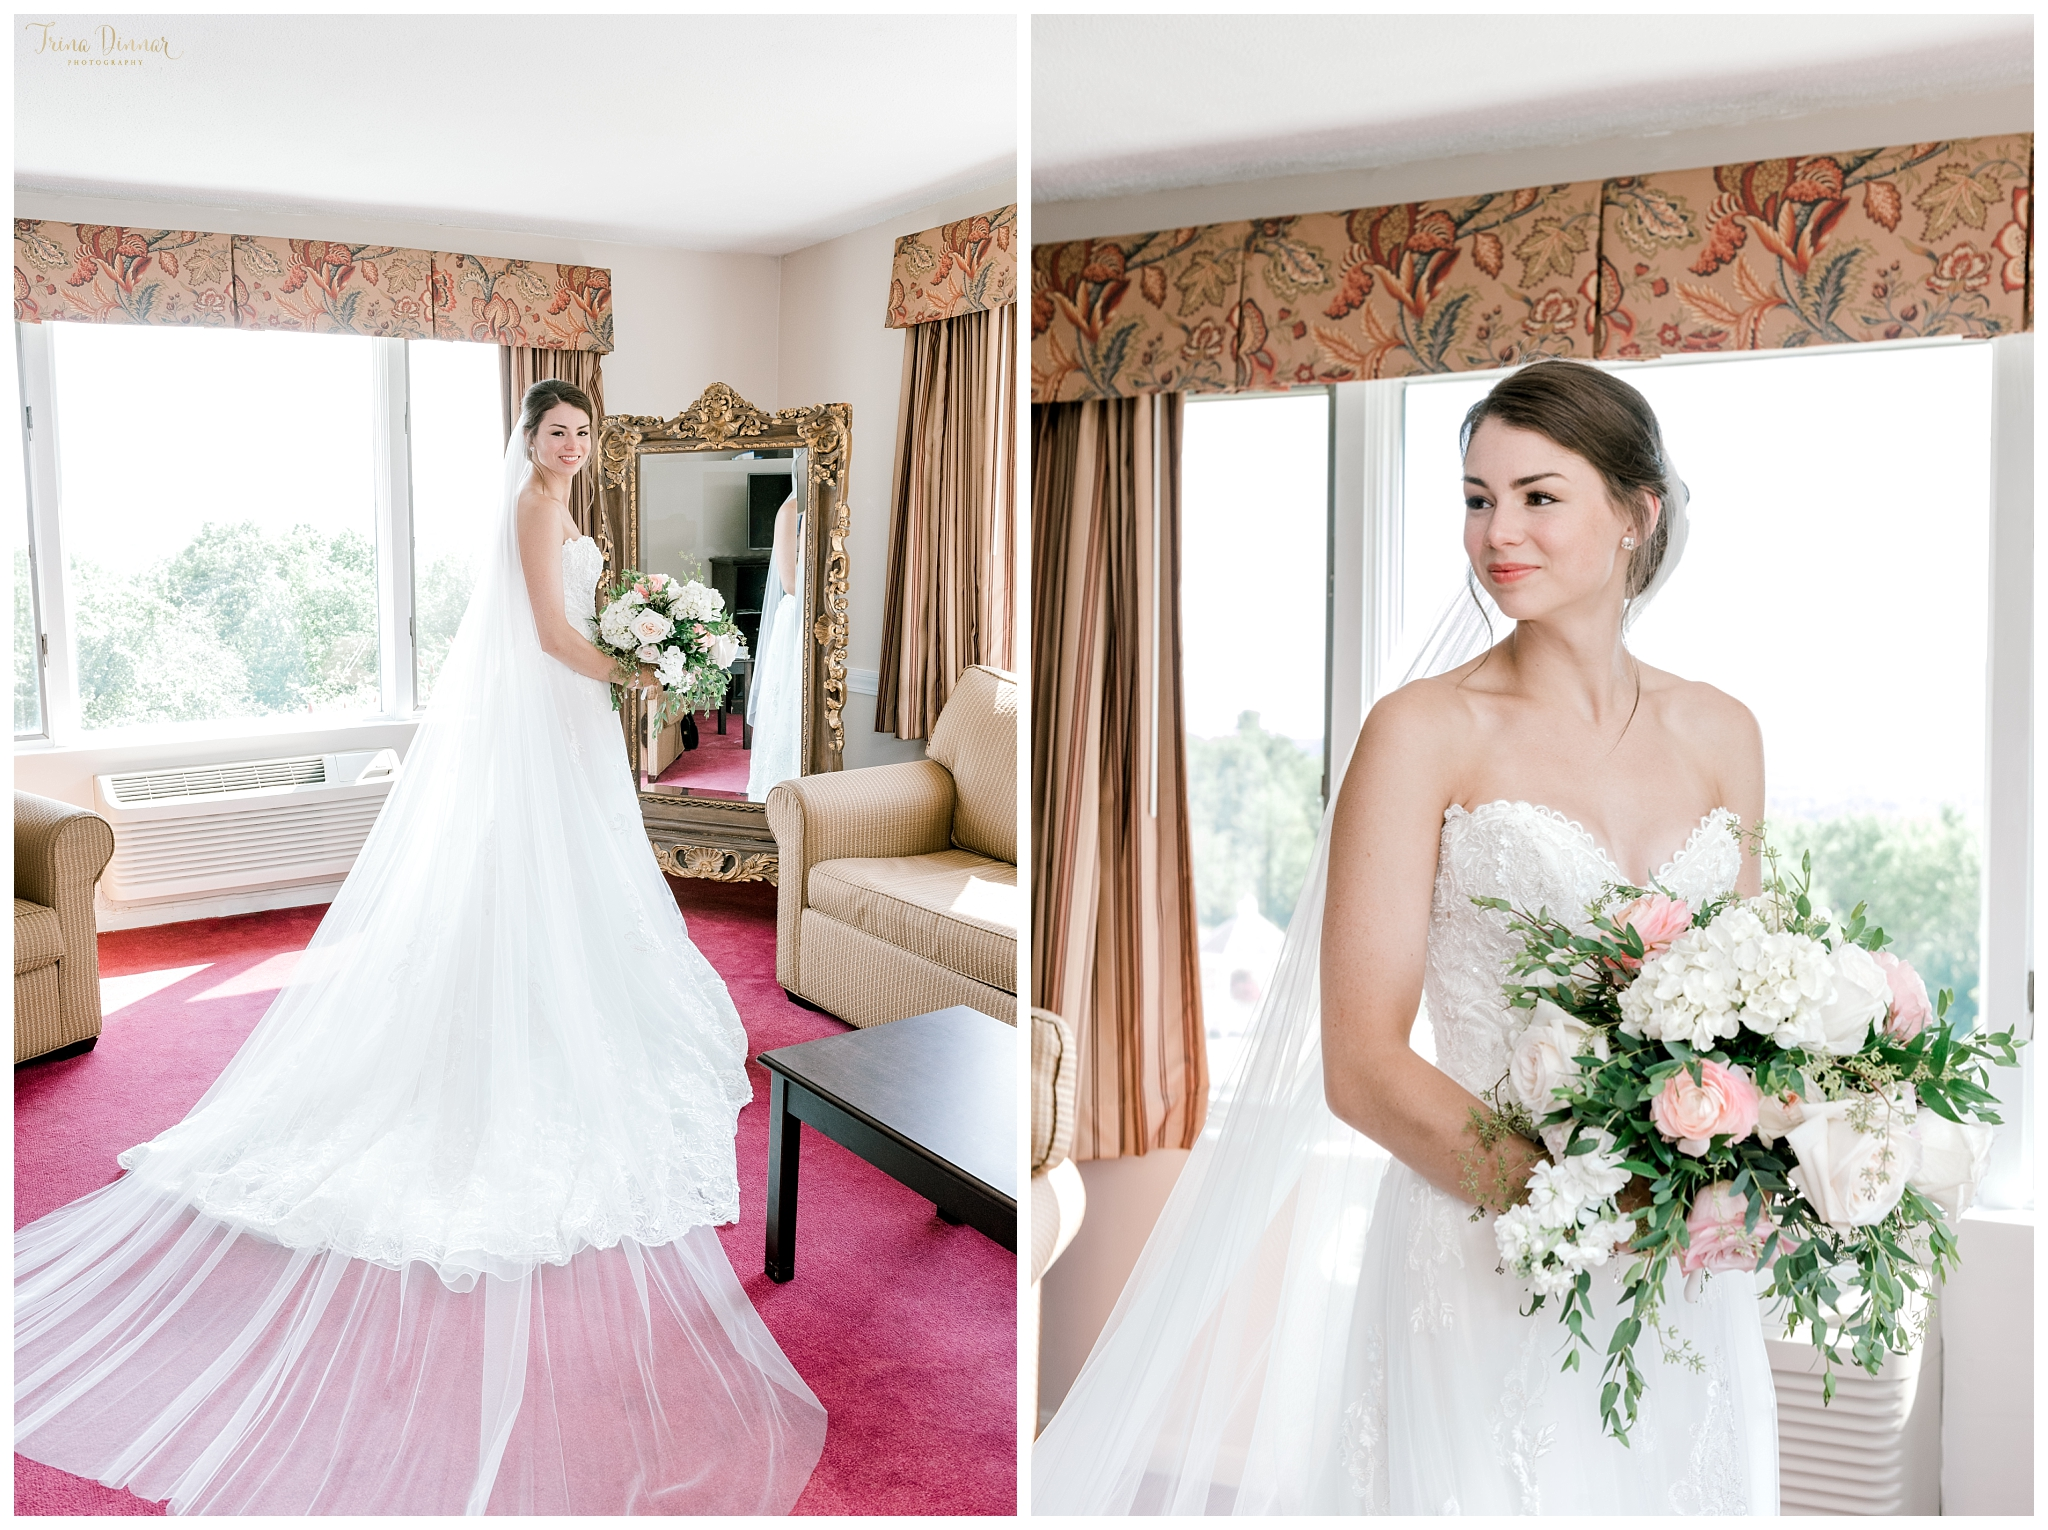 Arla's Wedding Day Bridal Portraits in Dedham, ME.